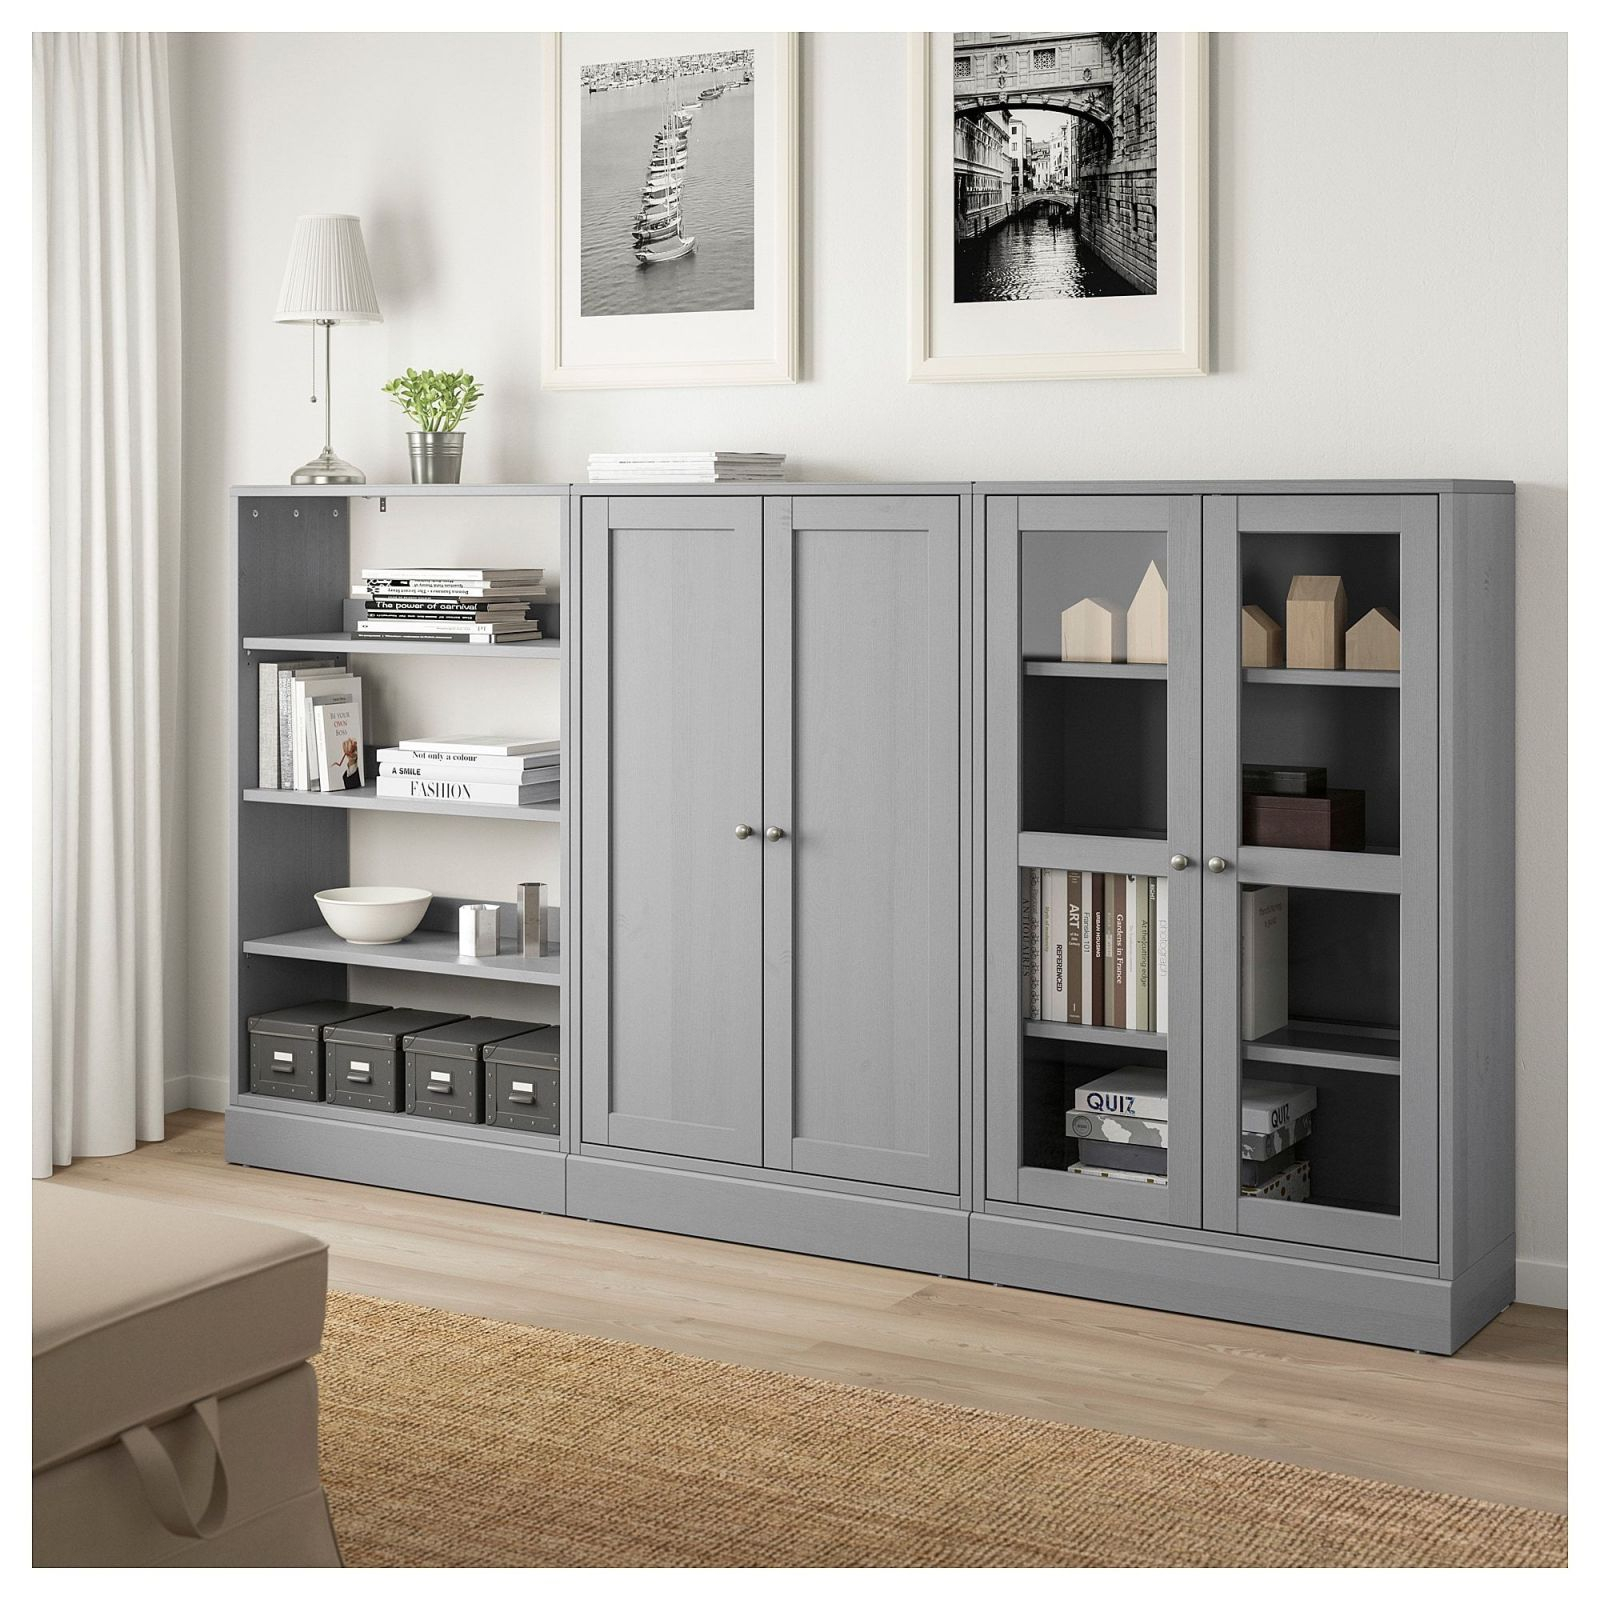 Ikea Havsta Gray Storage Combination W/glass Doors In 2019 | Mood pertaining to Living Room Storage Cabinet With Doors